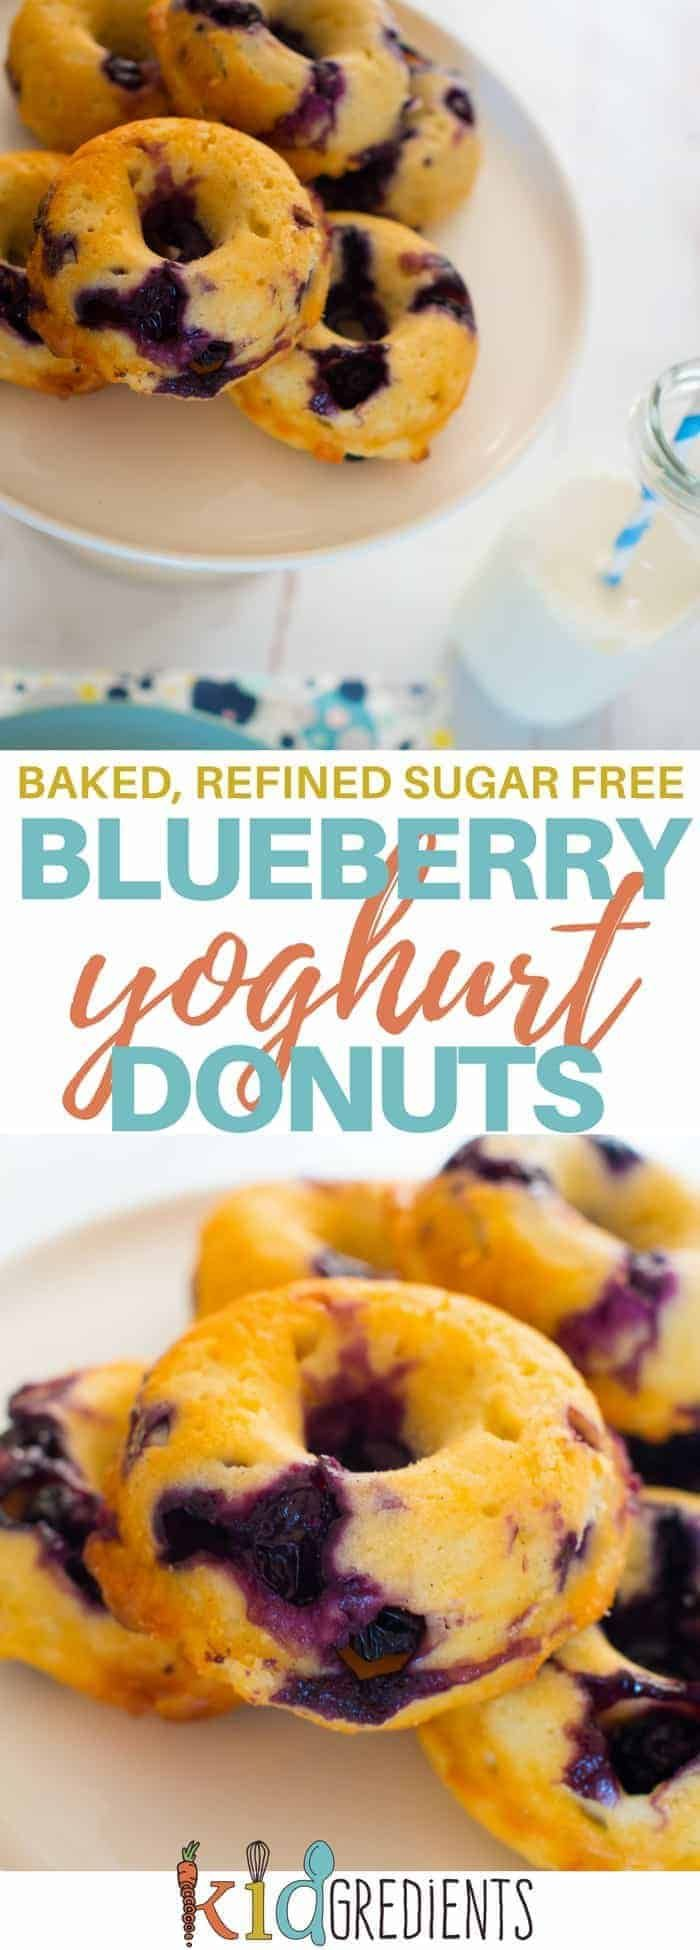 Baked blueberry yoghurt donuts- no added sugar #sugarfreerecipes